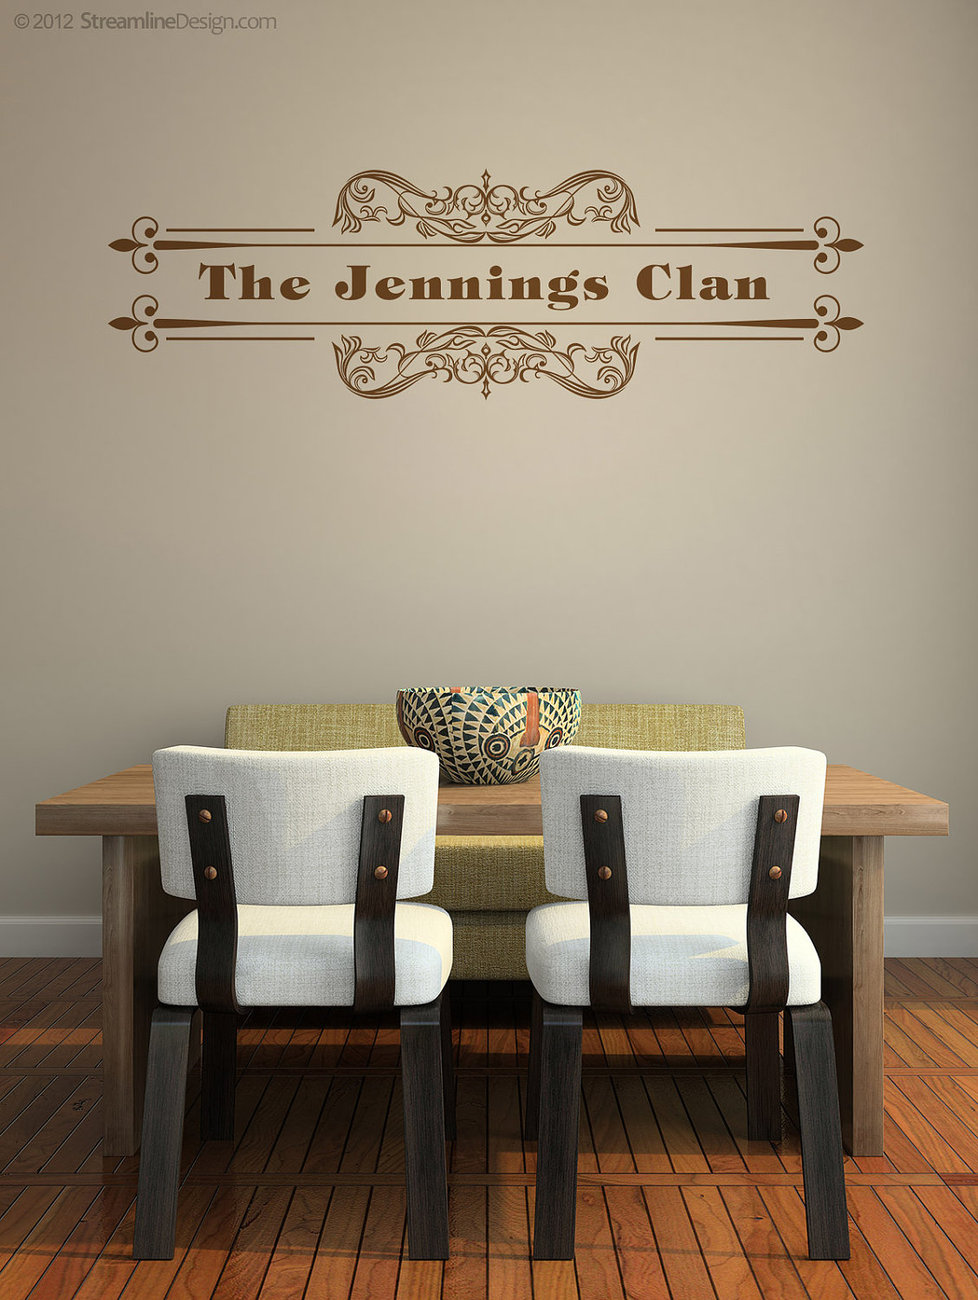 More Personalized Floral & Scroll Wall Graphics. Custom with your wording.